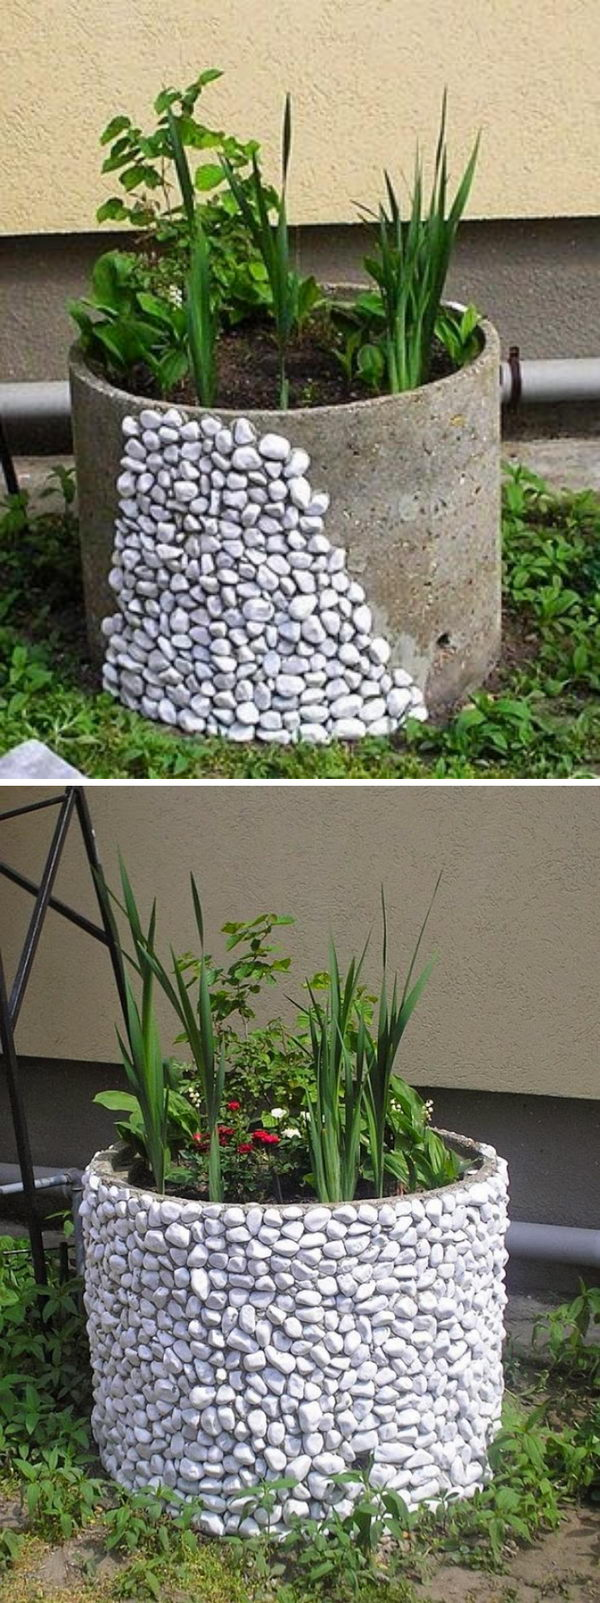 Cover Concrete Flower Pot with White Gravel to Get a Natural Look.